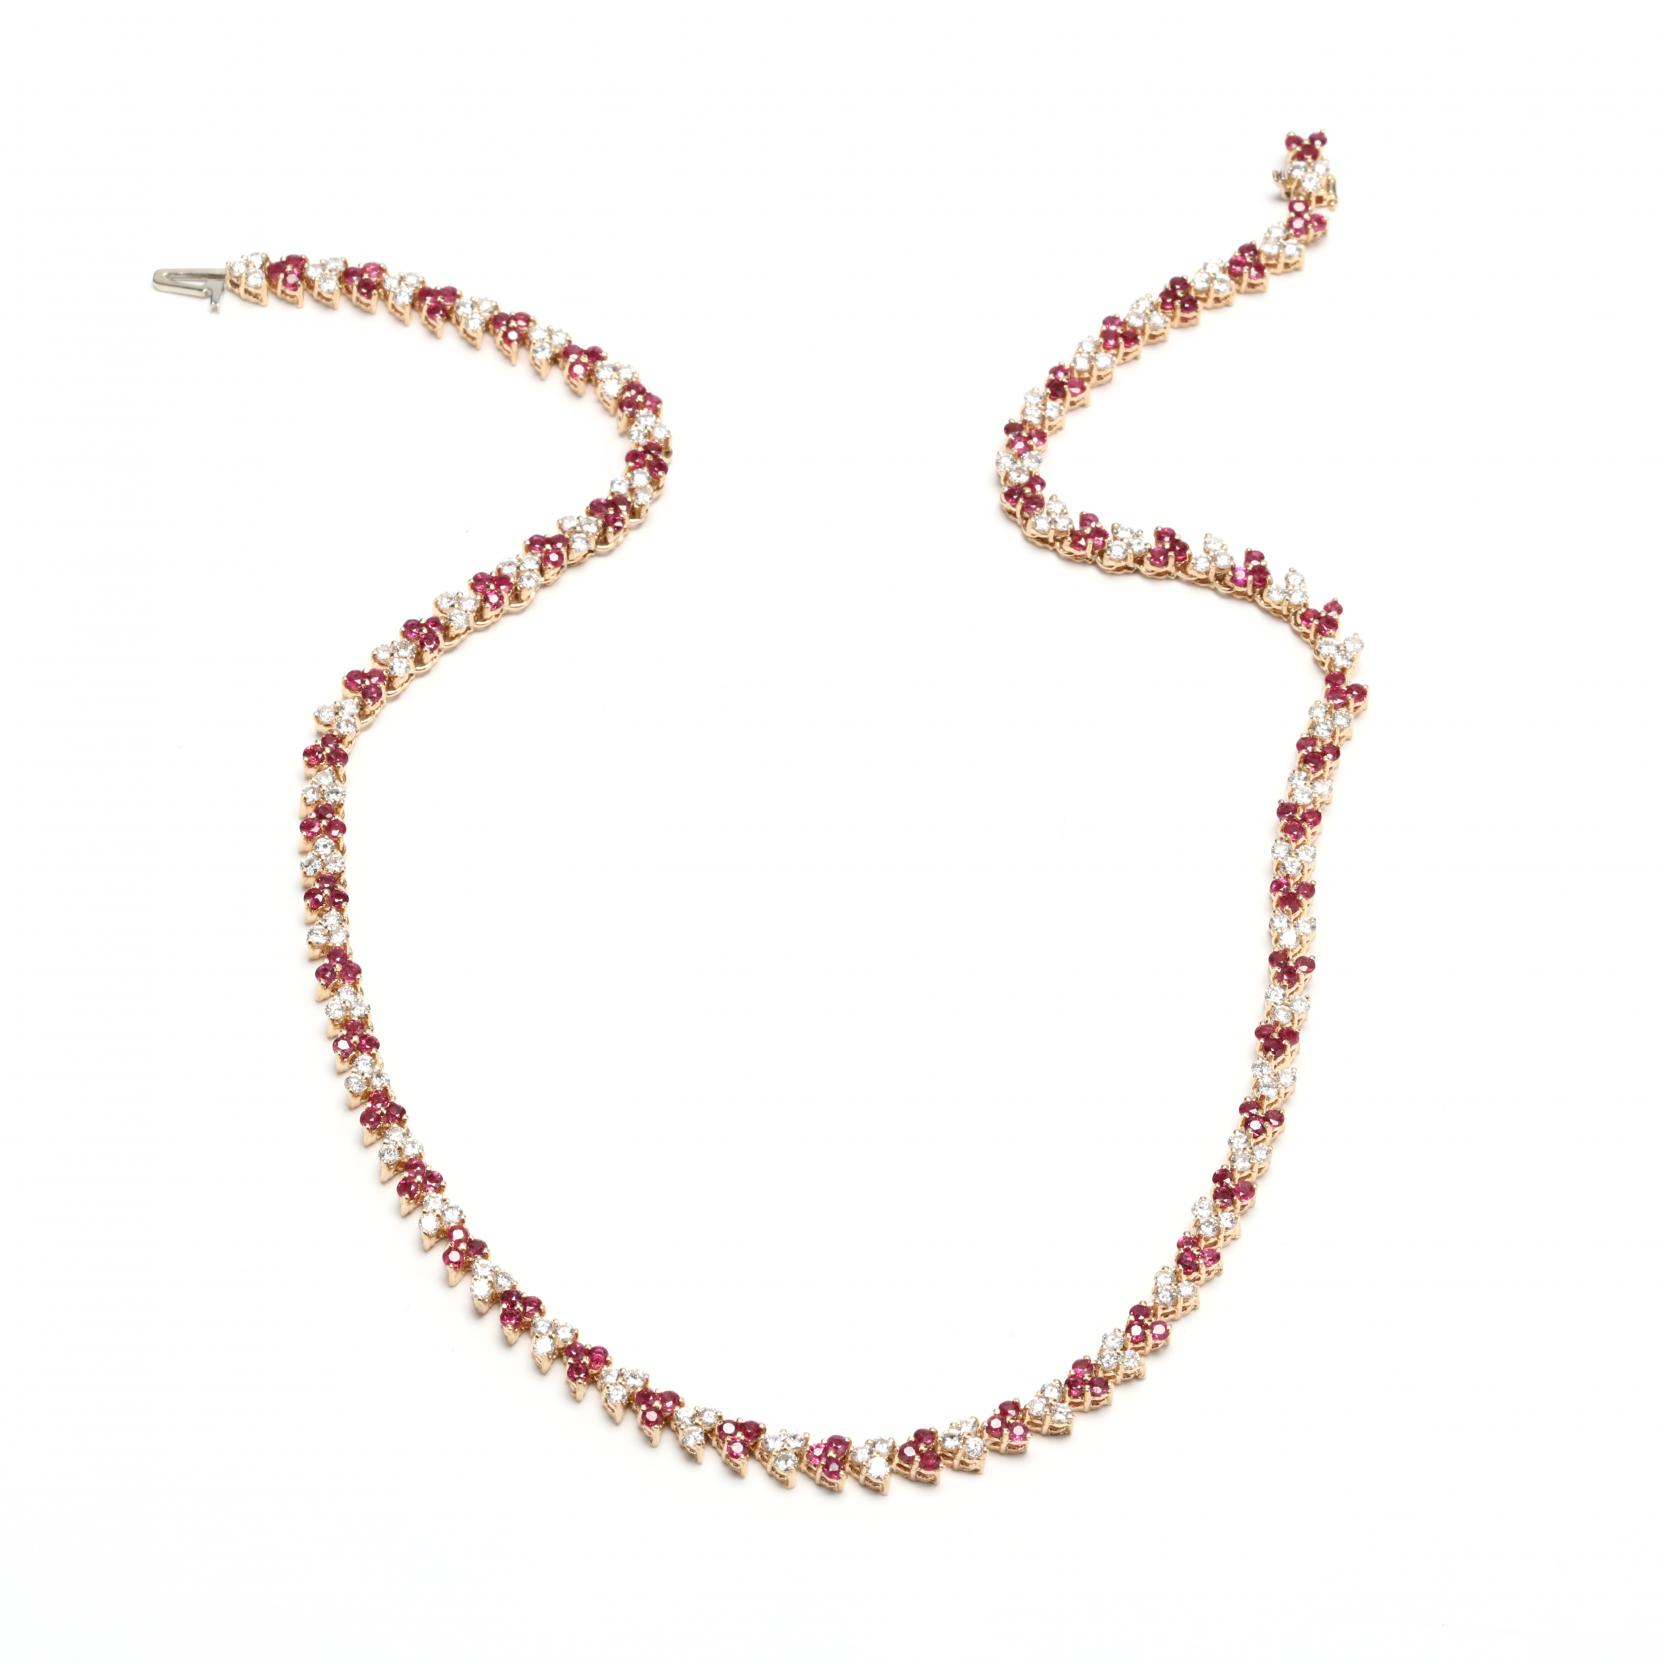 14Kt Gold, Ruby, And Diamond Wreath Necklace Intended For Most Current Diamond Wreath Necklaces (View 1 of 25)